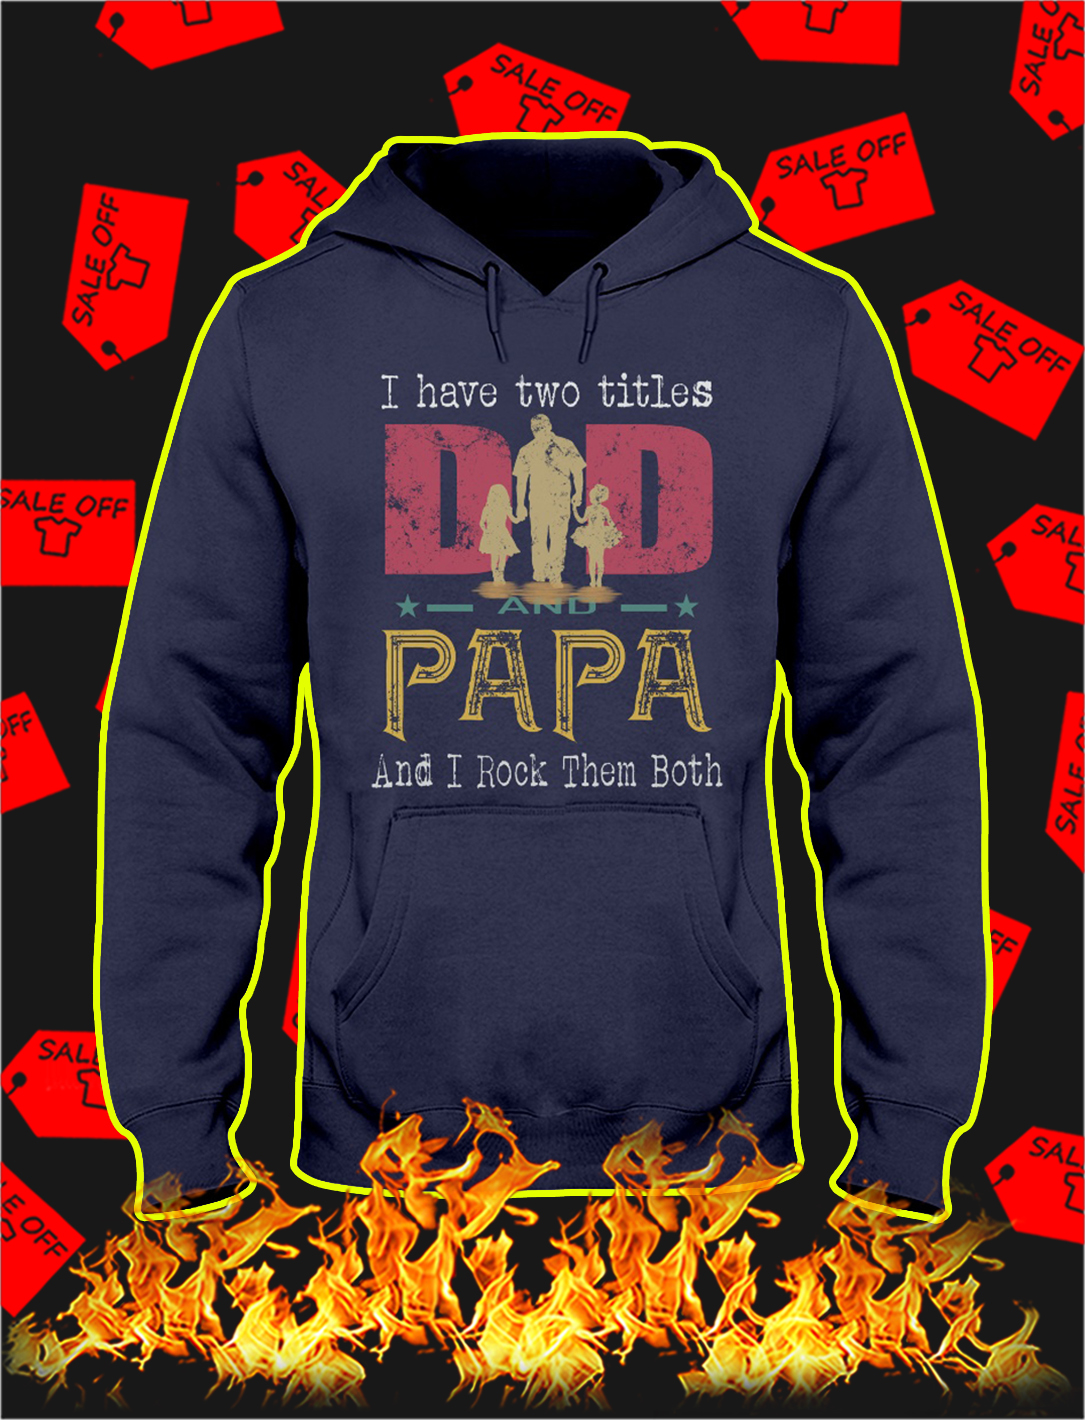 I have to titles dad and papa and i rock them both hoodie